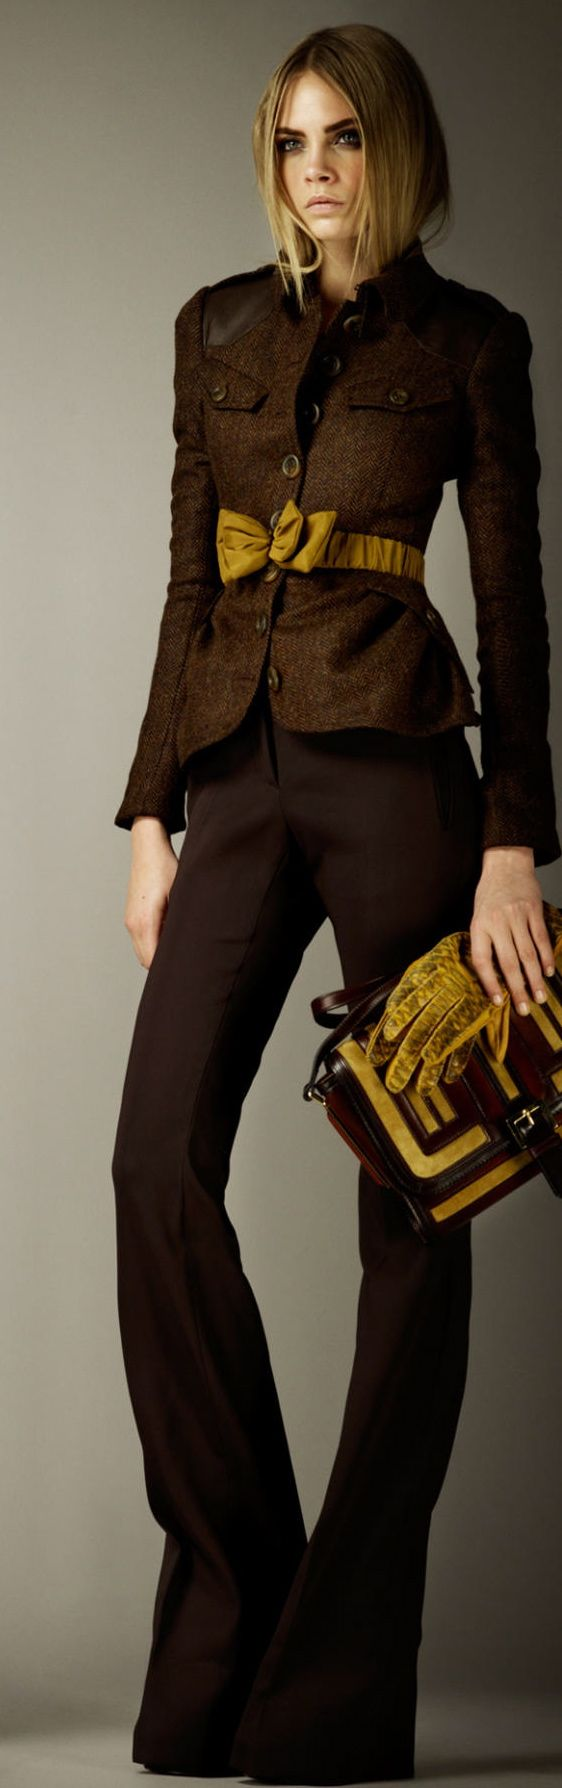 Burberry. Like the suit, would not tie the belt in a bow either be buckled or tie with artistic knot.